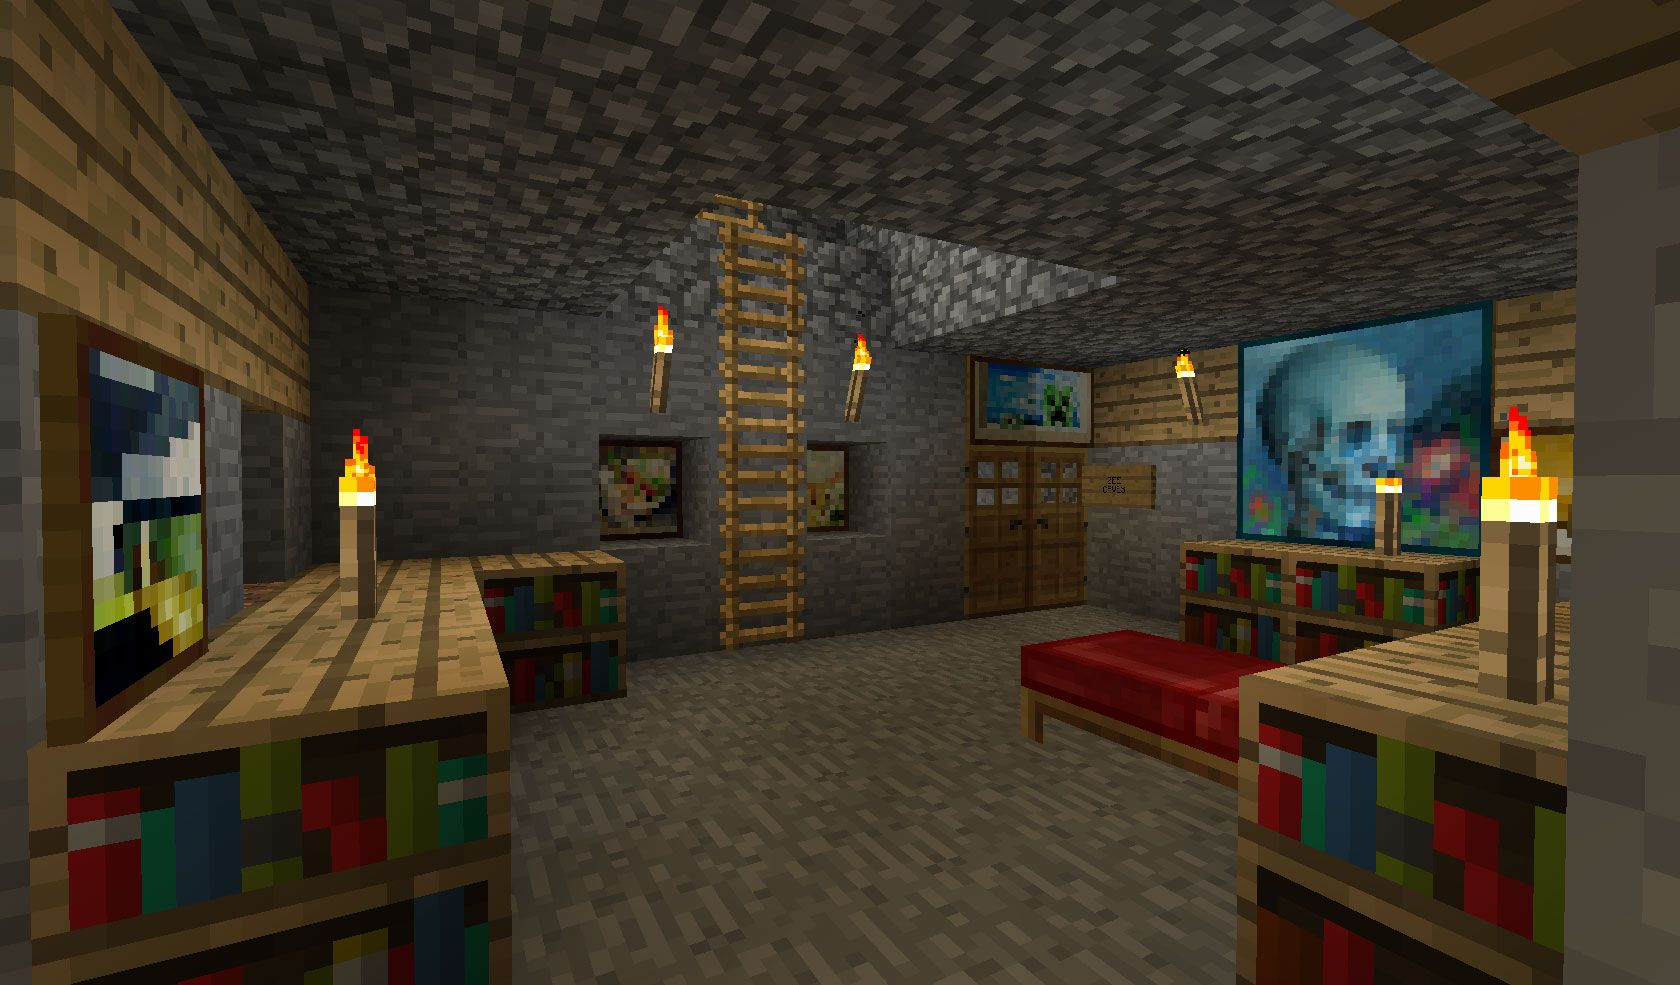 Cool Bedroom Ideas Minecraft Pe minecraft room ideas pocket edition | minecraft | pinterest